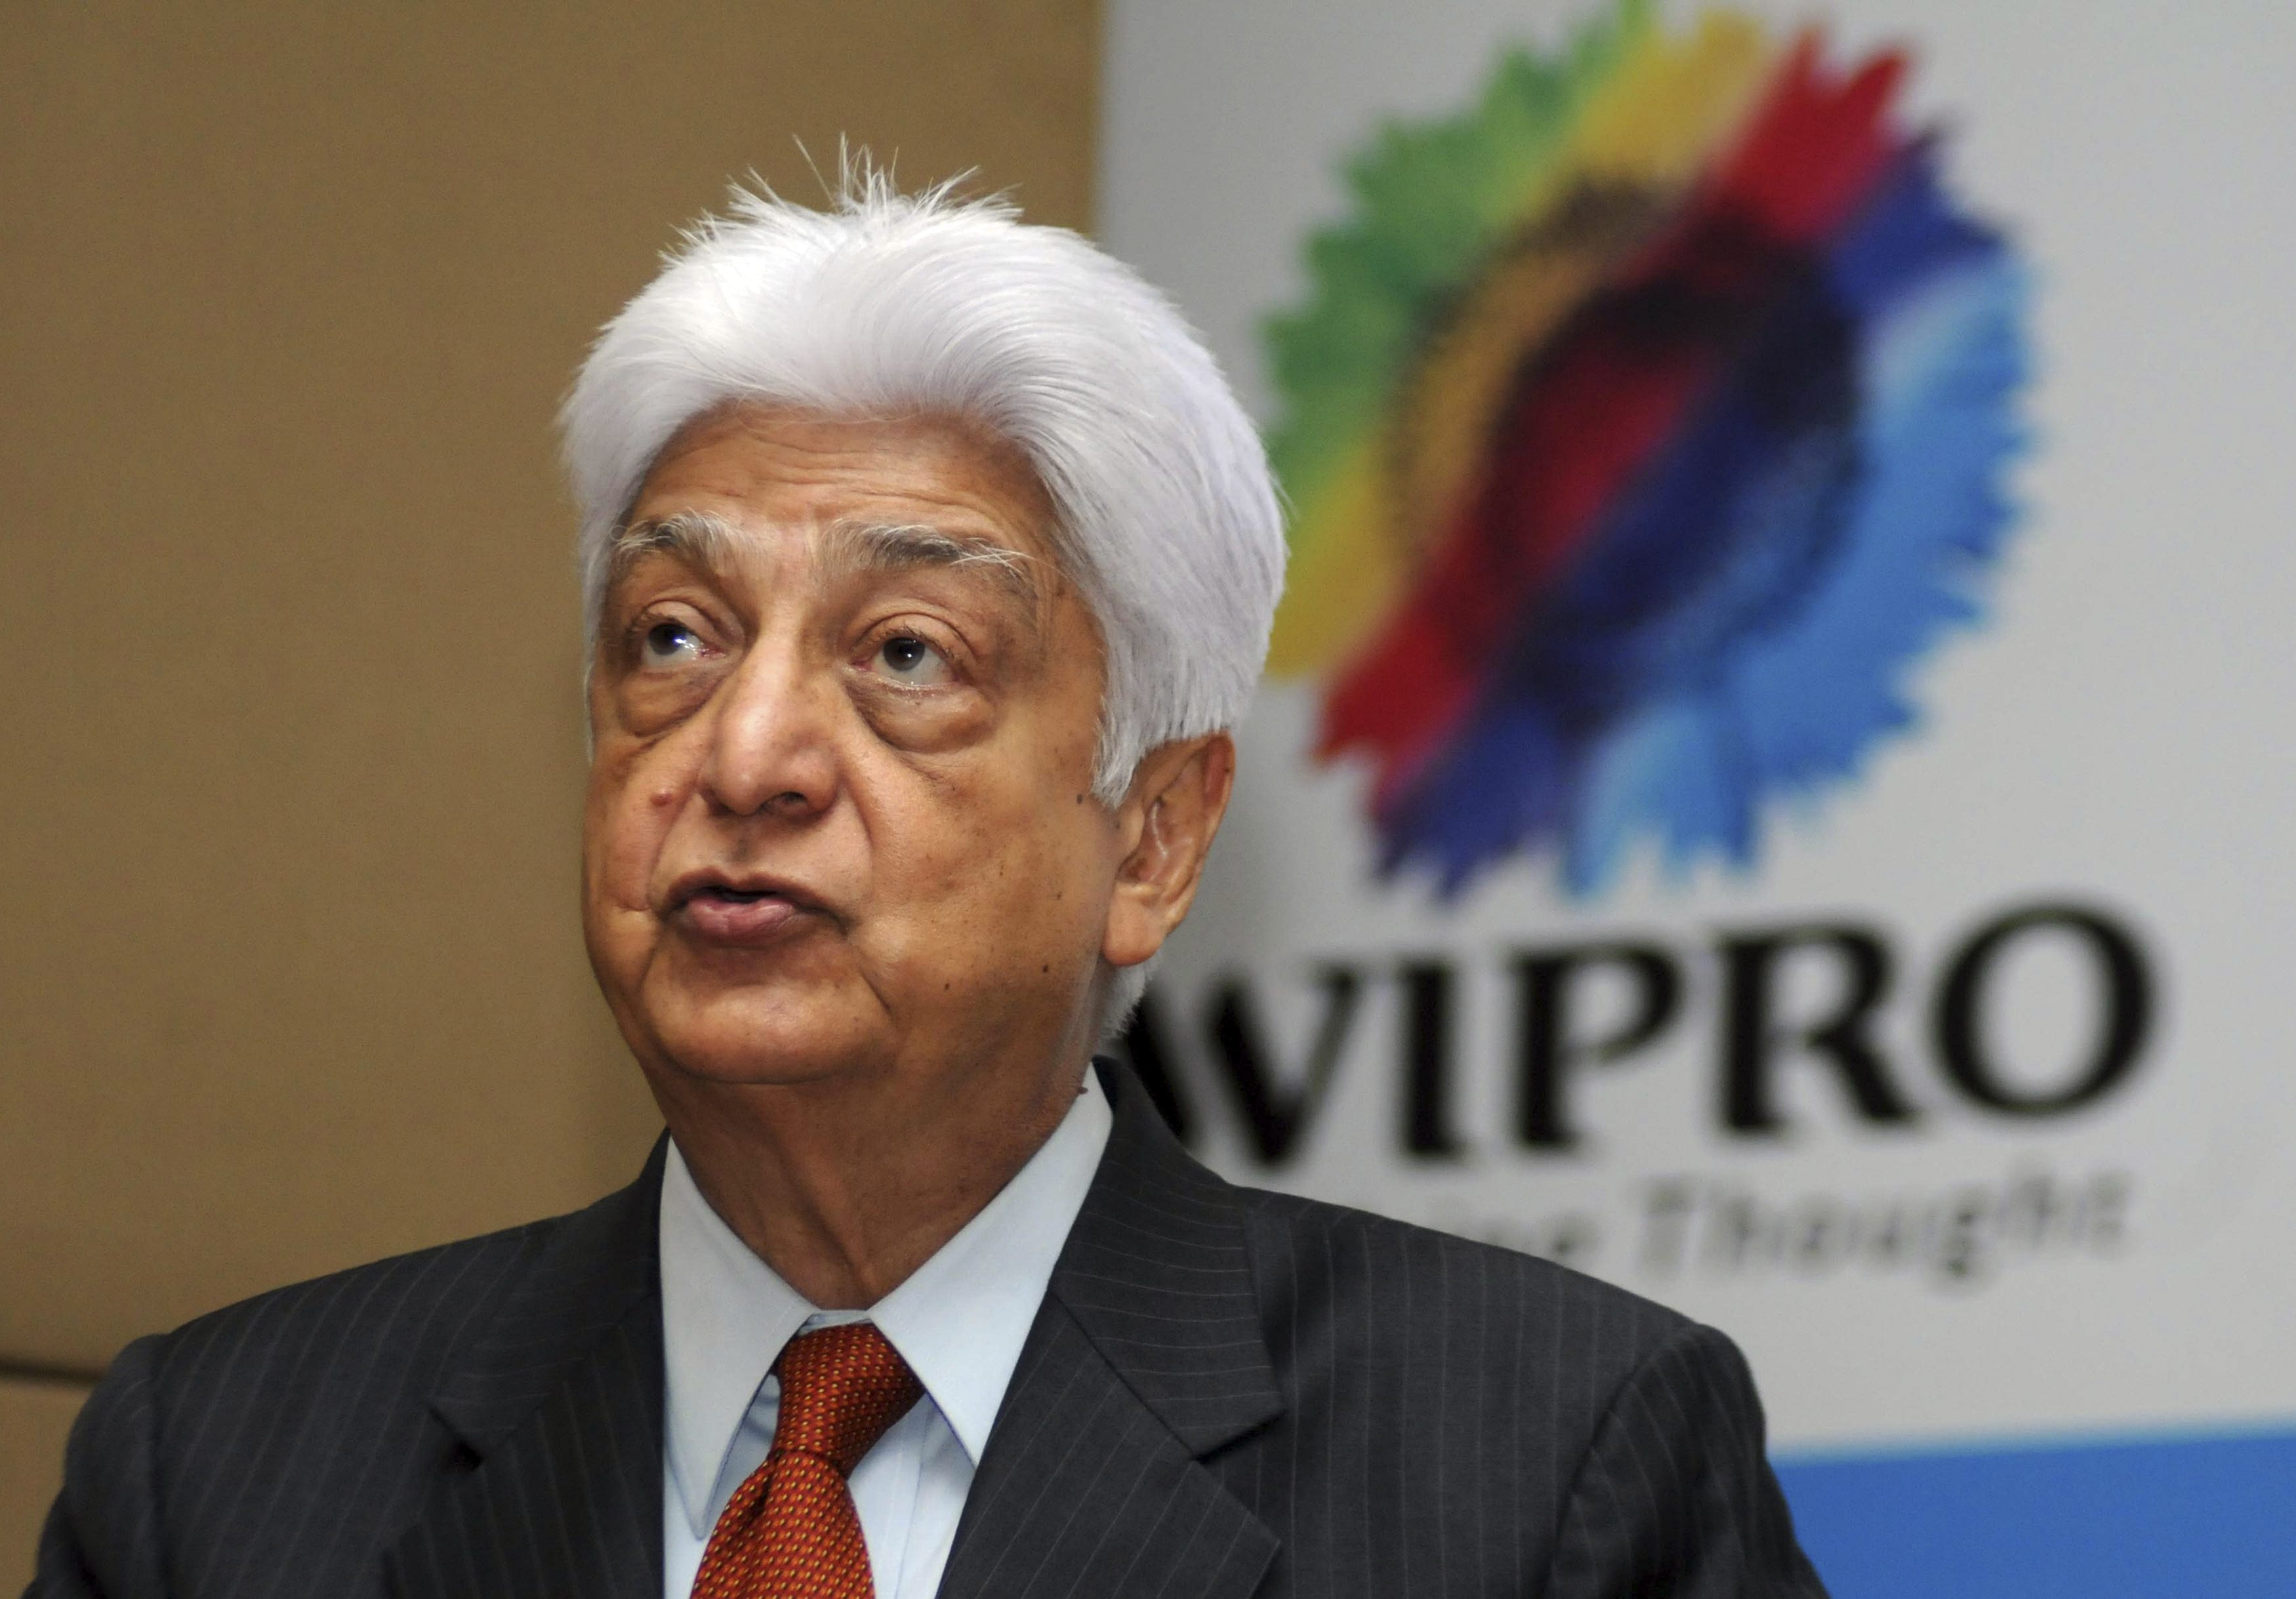 Wipro Azim Premji salary increased 95 percent in one year will retire soon